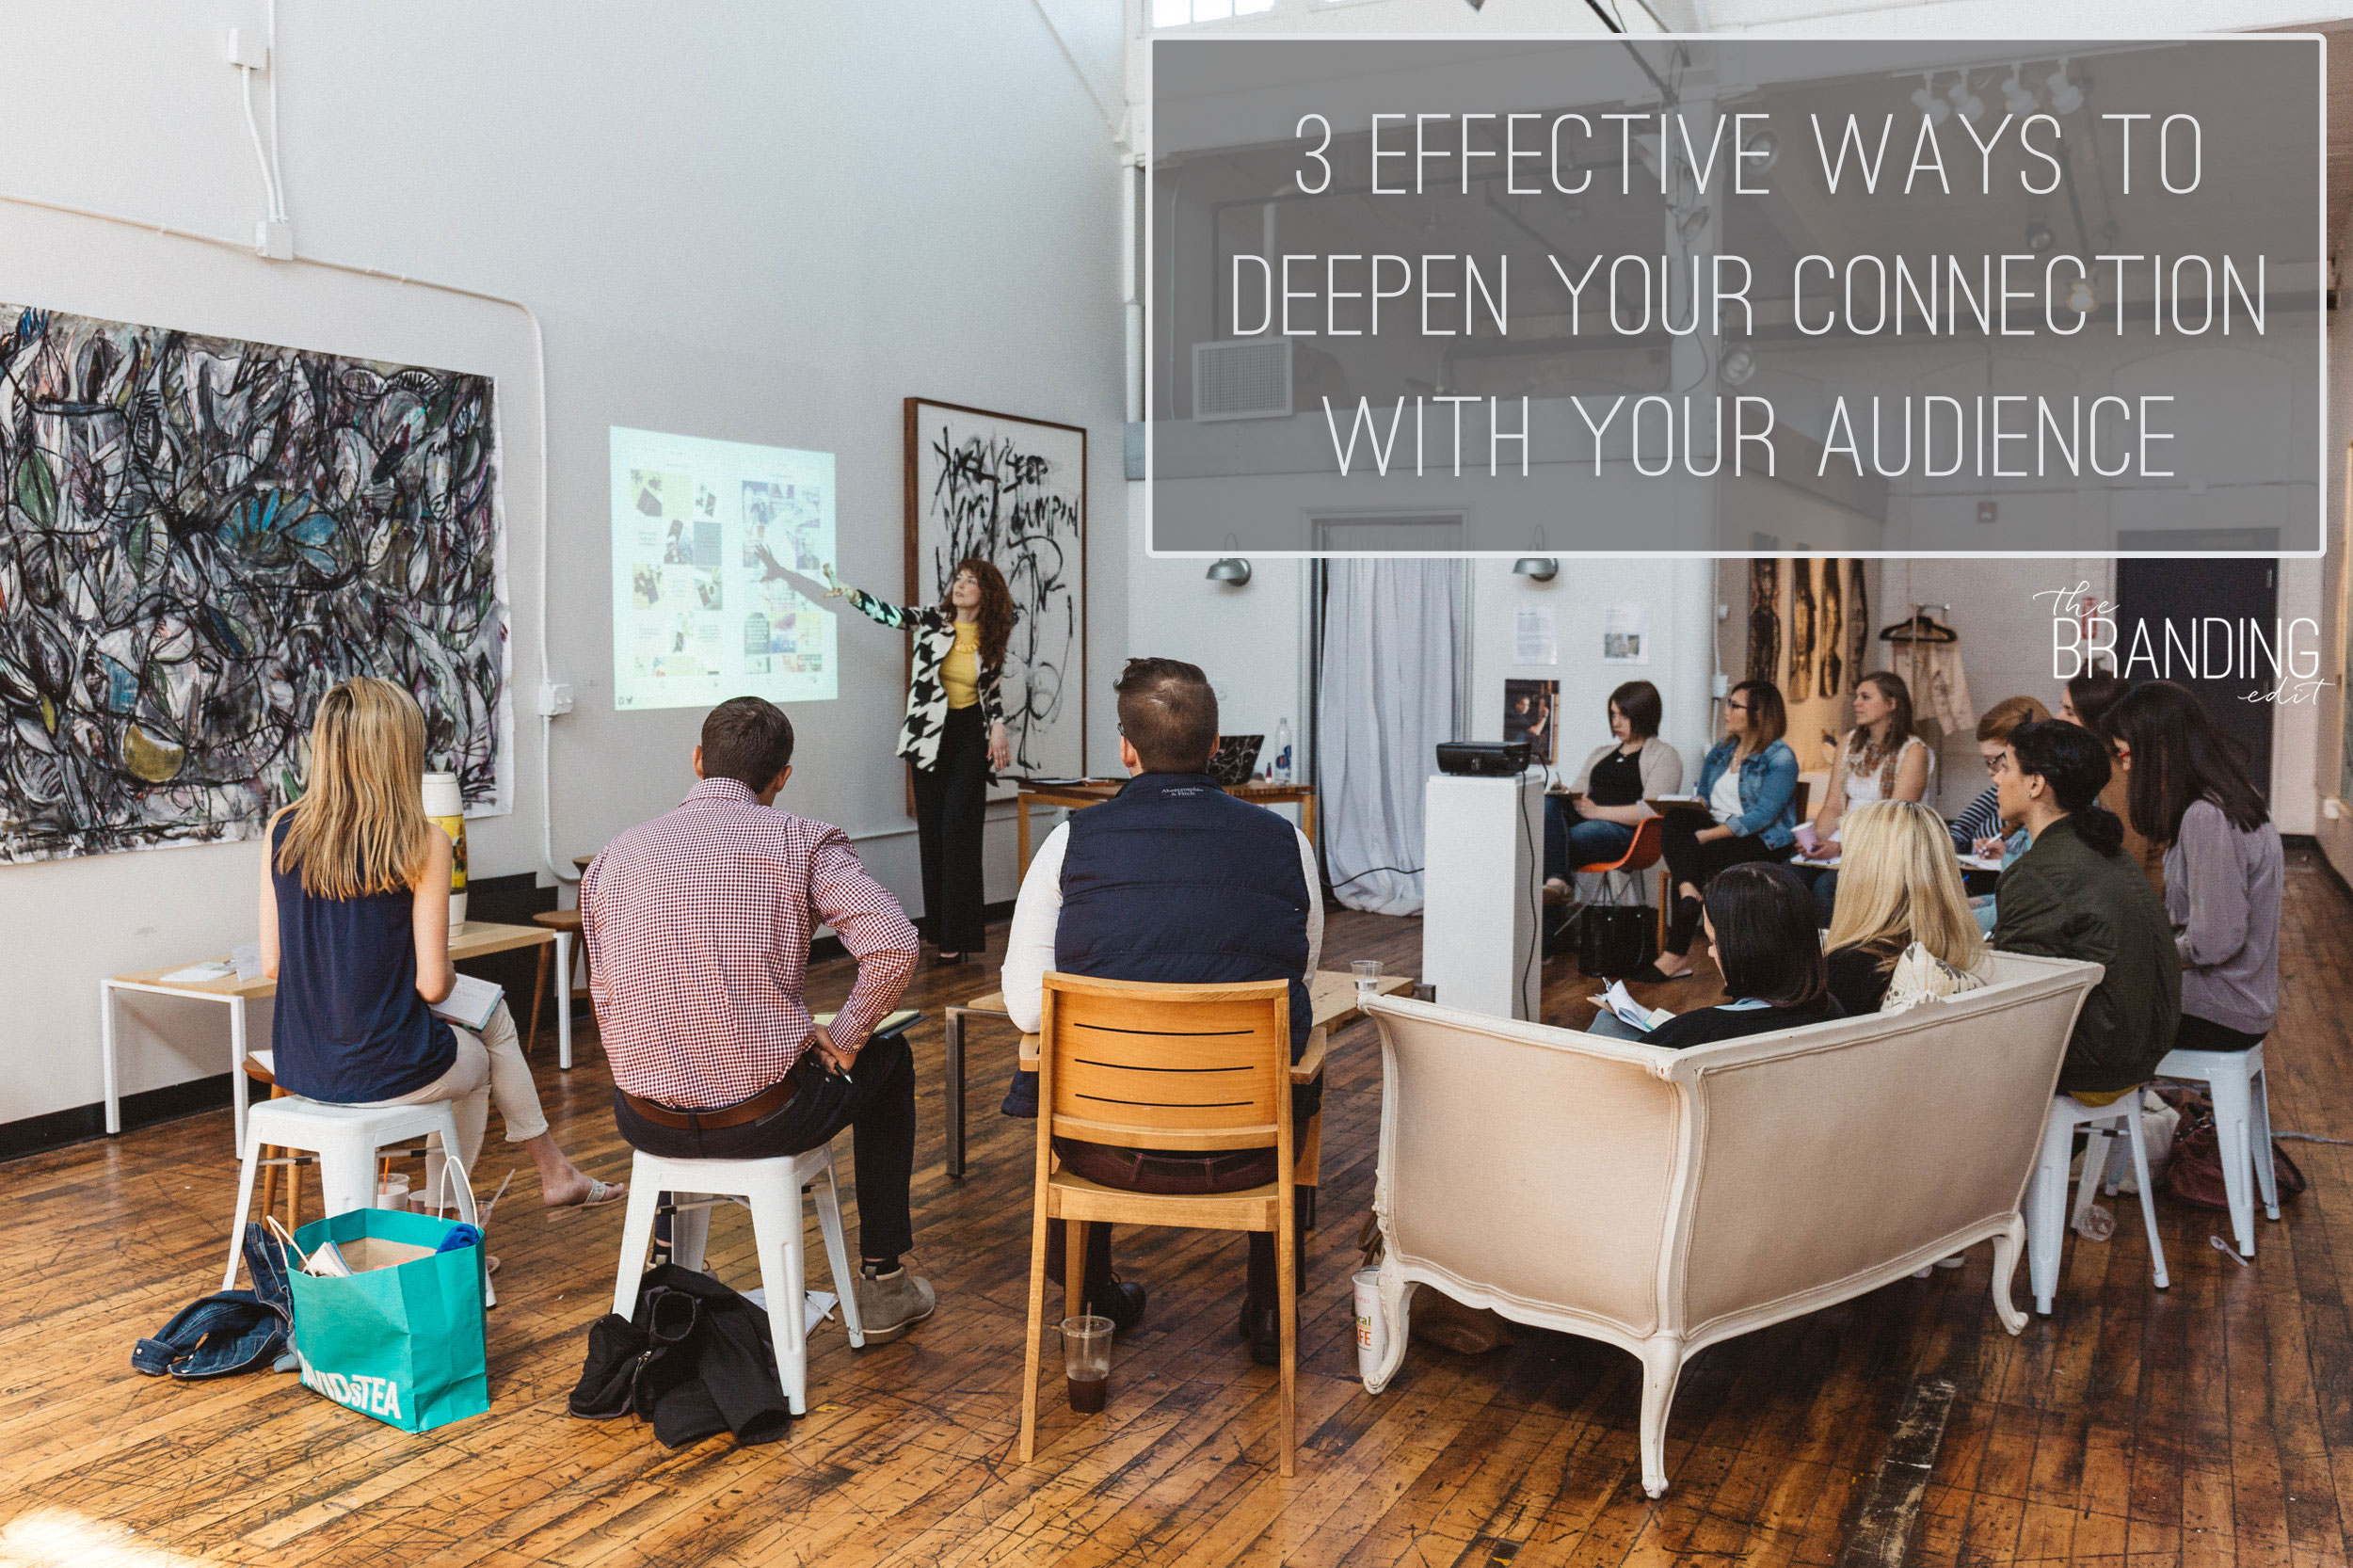 3-Effective-Ways-to-Deepen-Your-Connection-with-Your-Audience.jpg